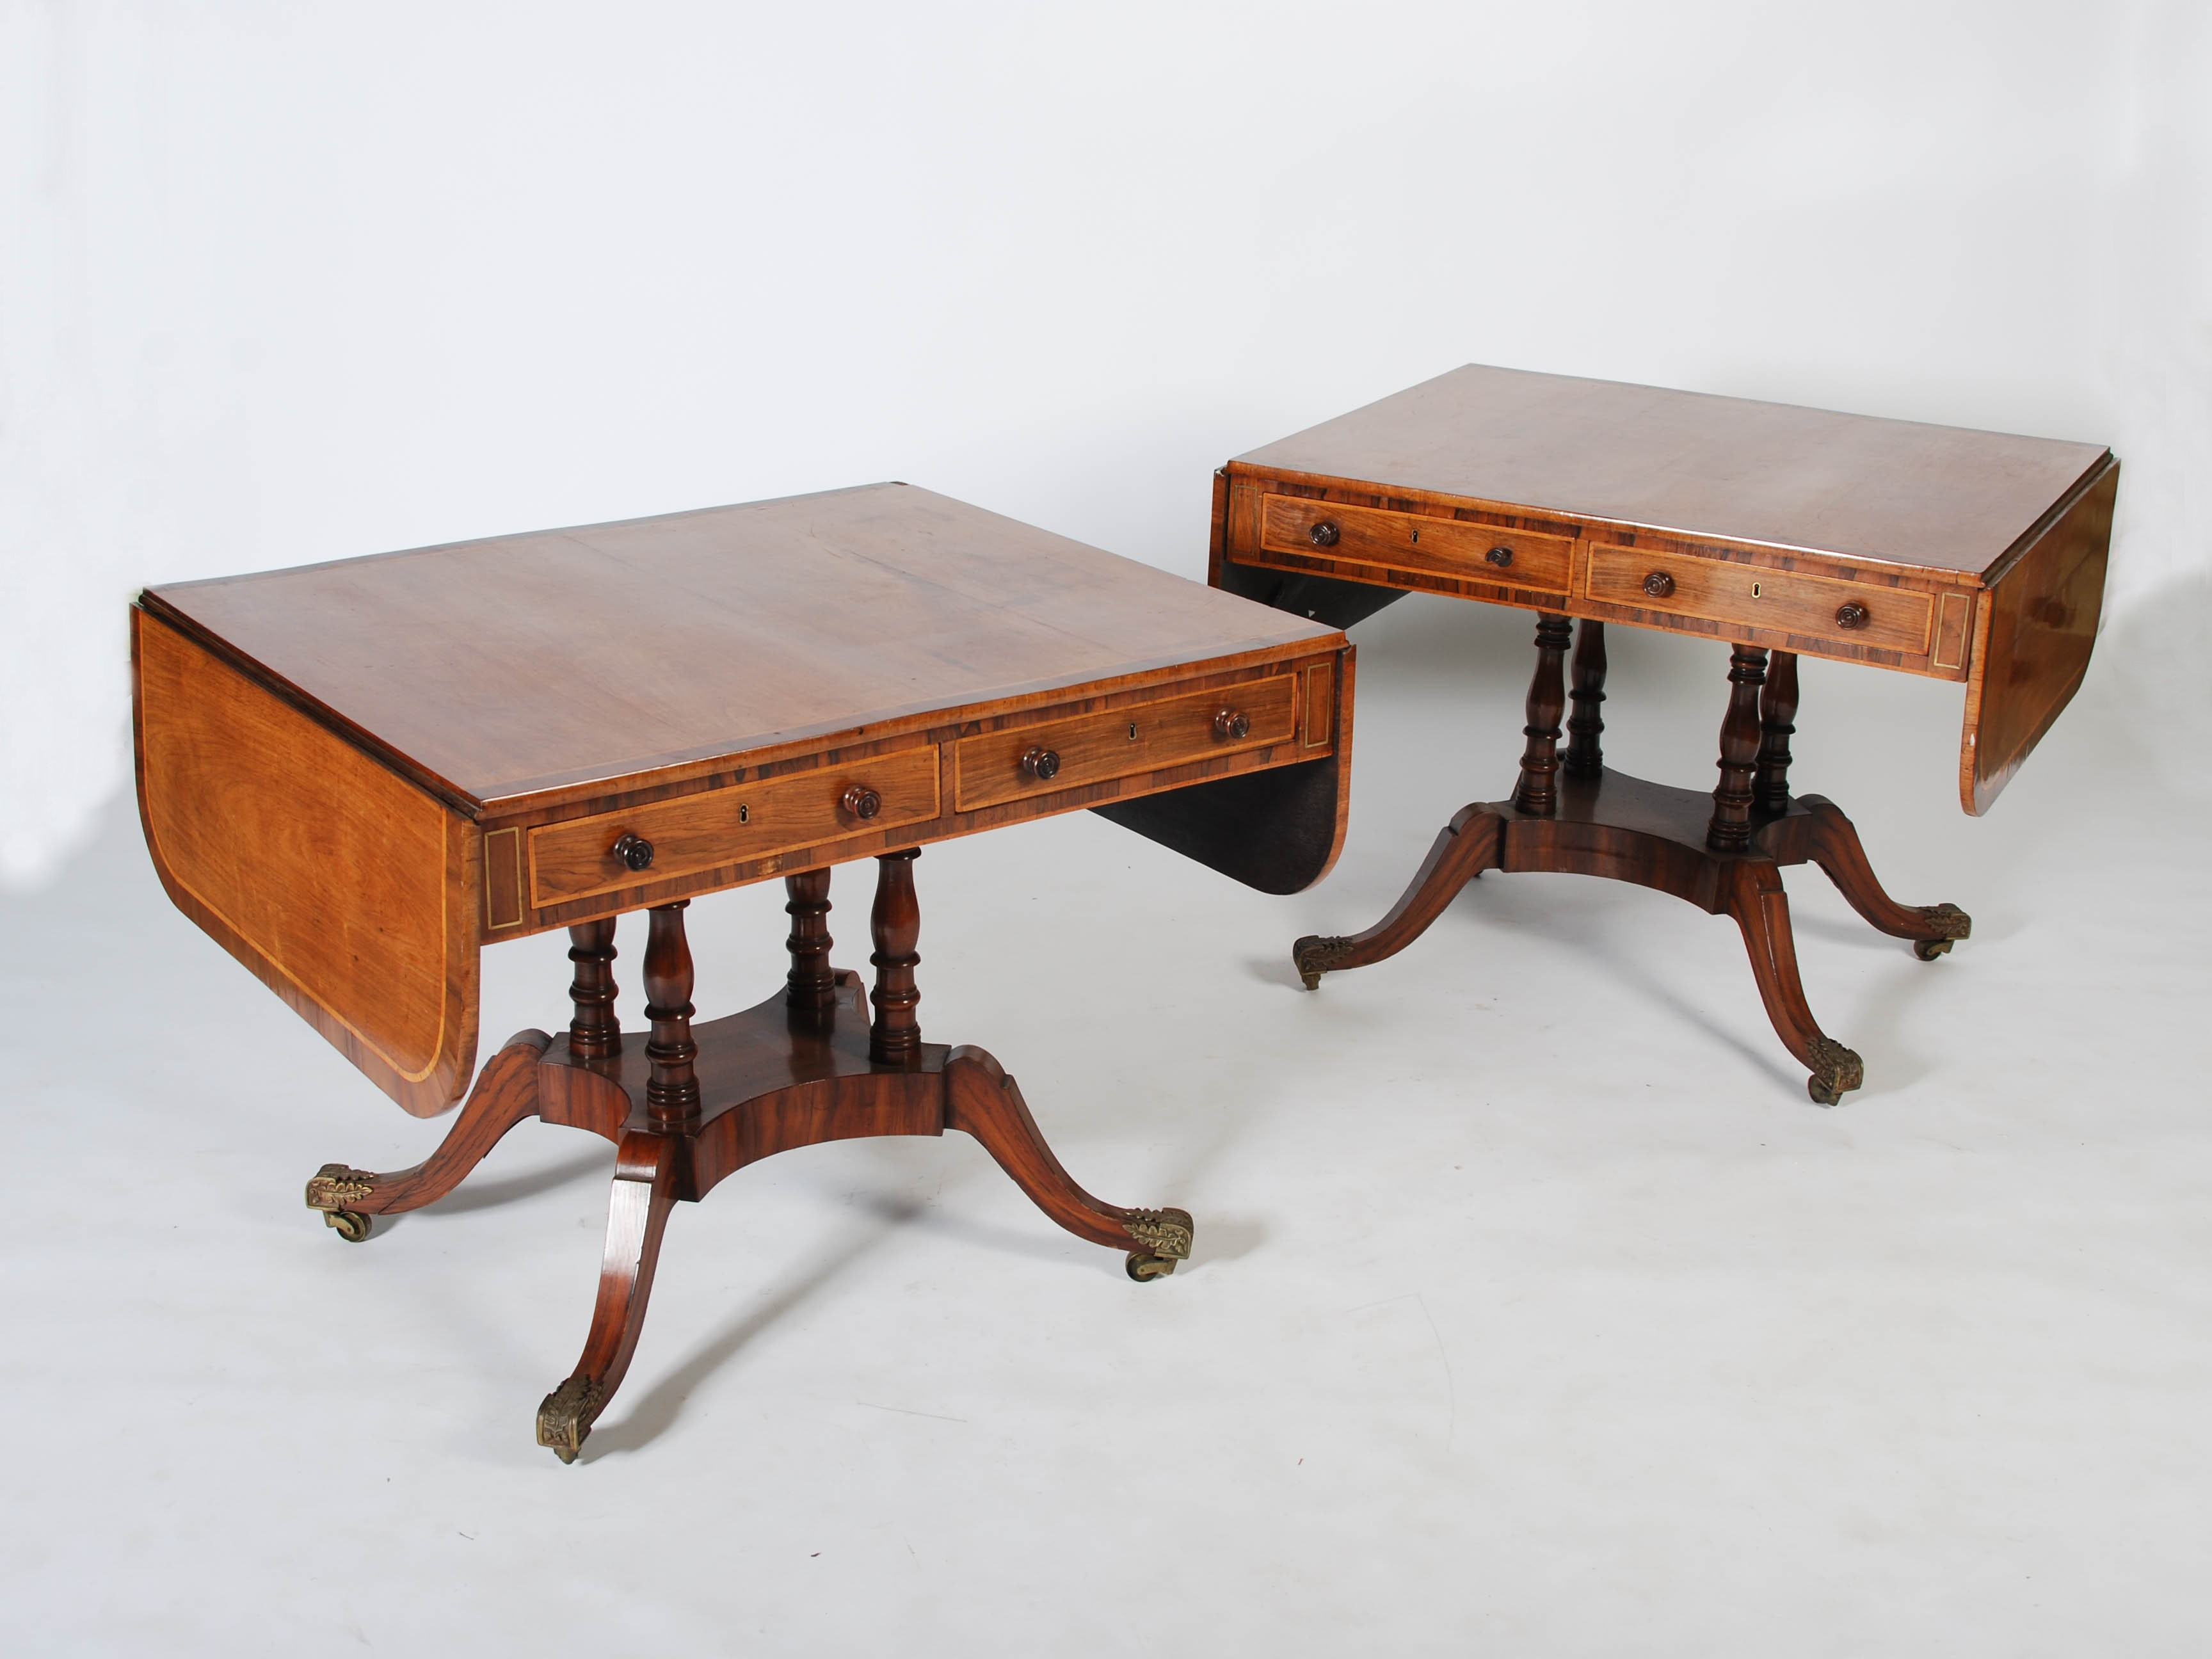 Lot 46 - A pair of 19th century mahogany, rosewood and brass inlaid sofa tables, the rectangular tops with